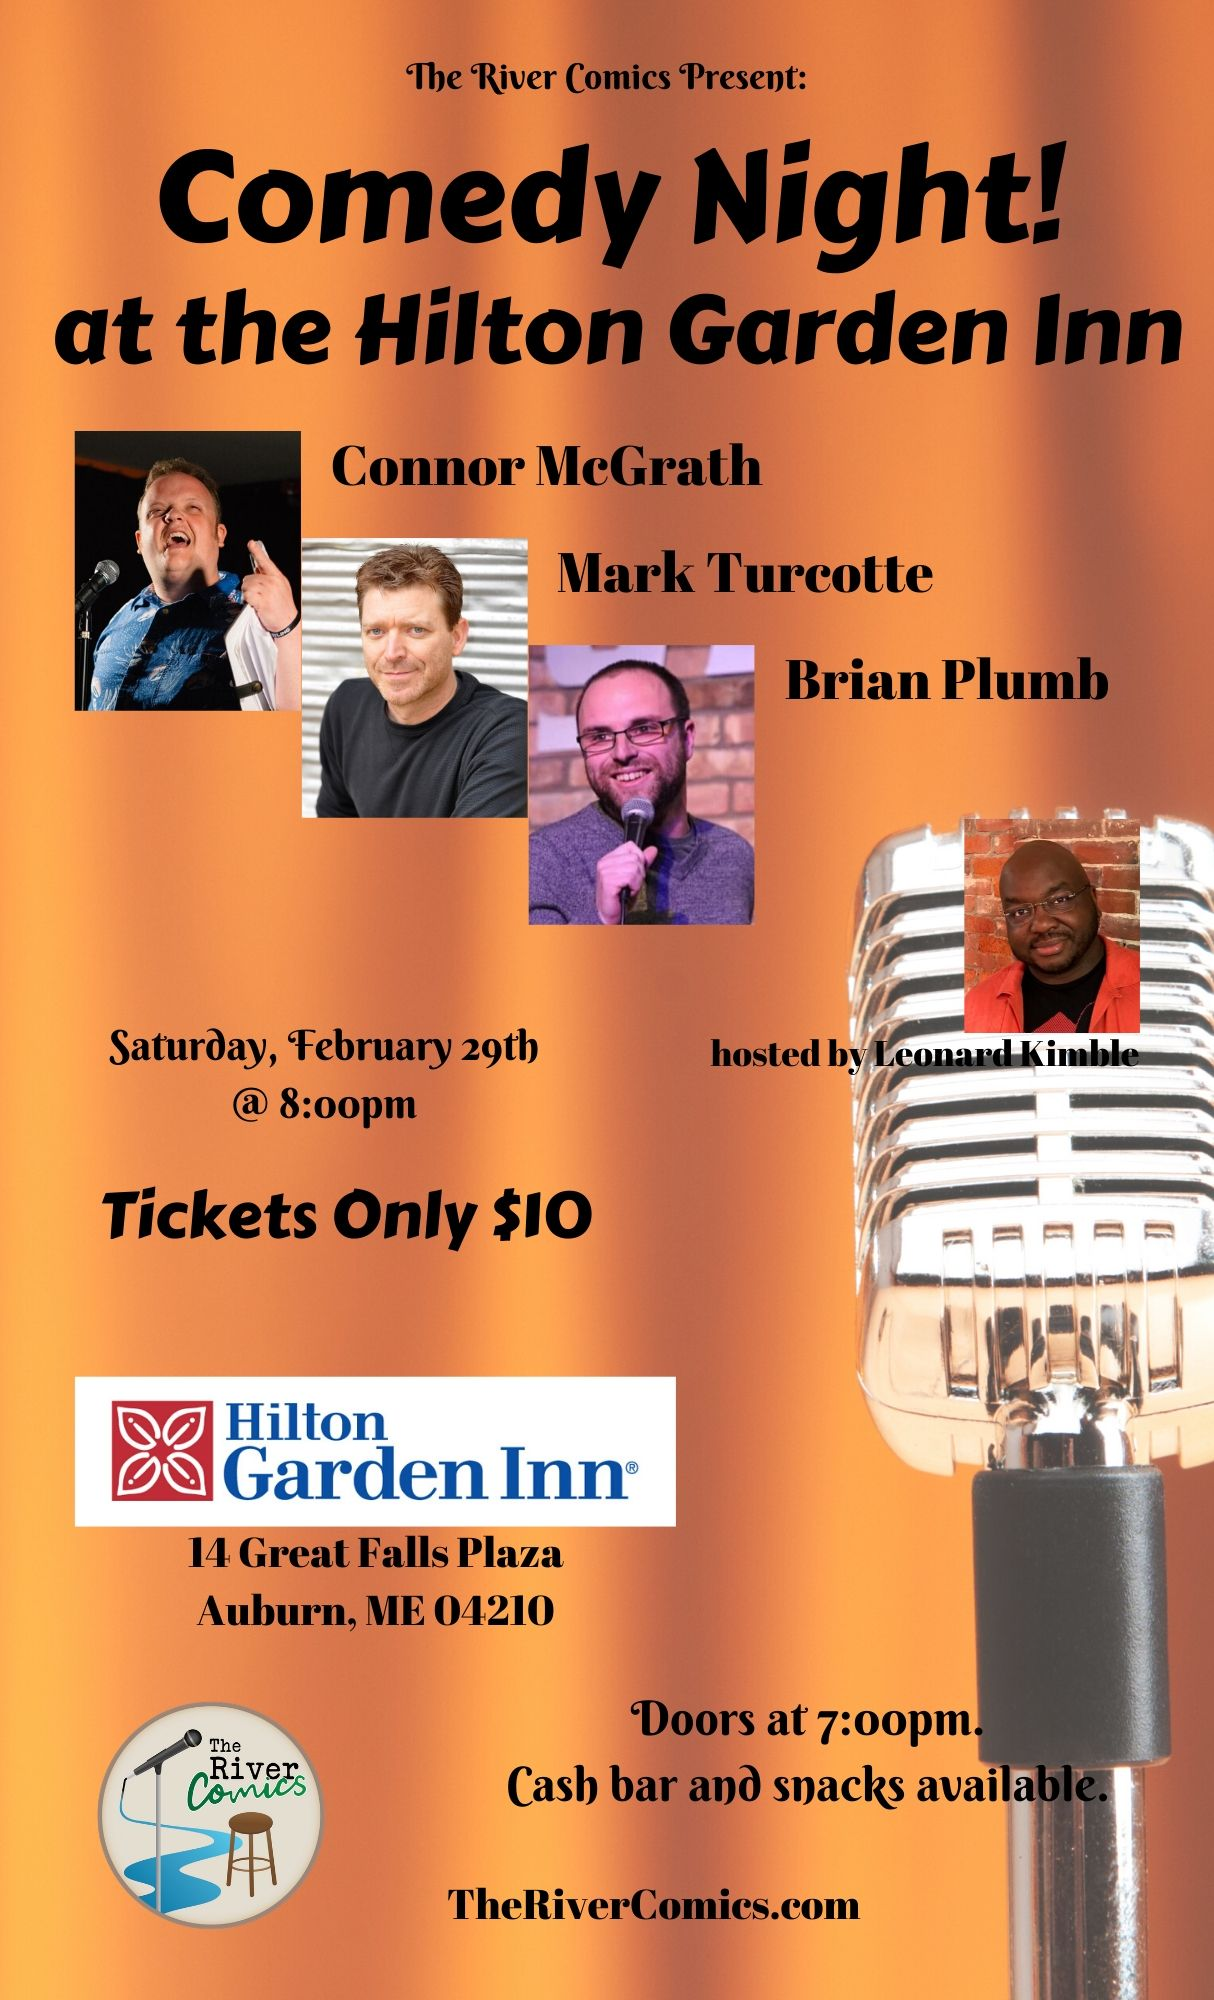 Comedy Night at The Hilton Garden Inn - Saturday, February 29th at 8pm